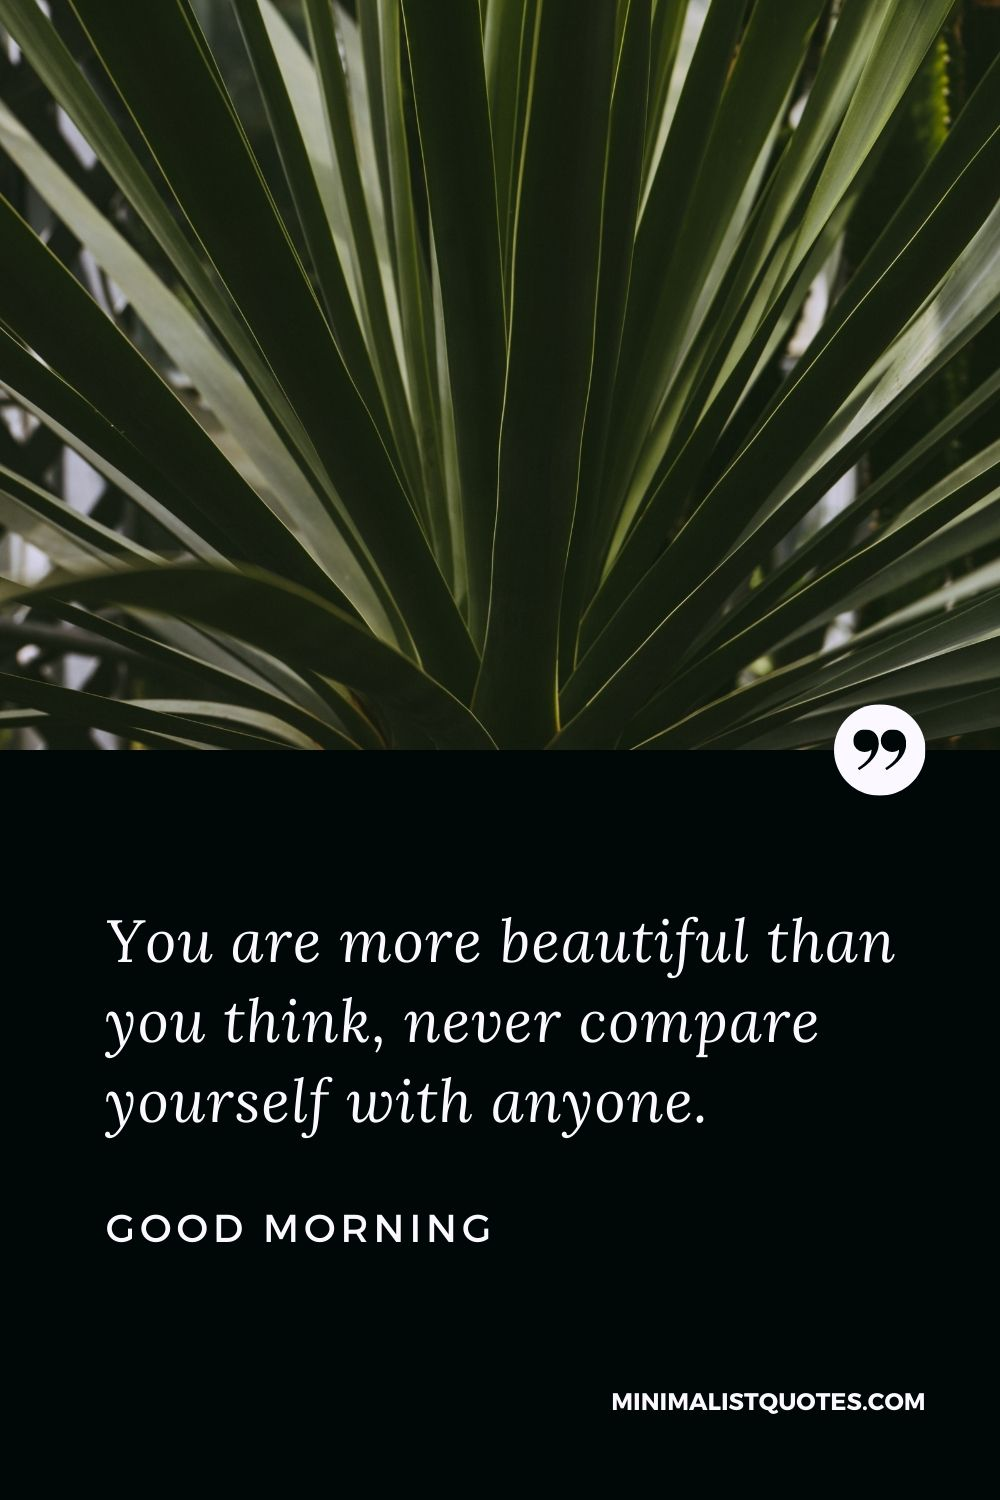 Good Morning Wish & Message With Image: You are more beautiful than you think, never compare yourself with anyone.